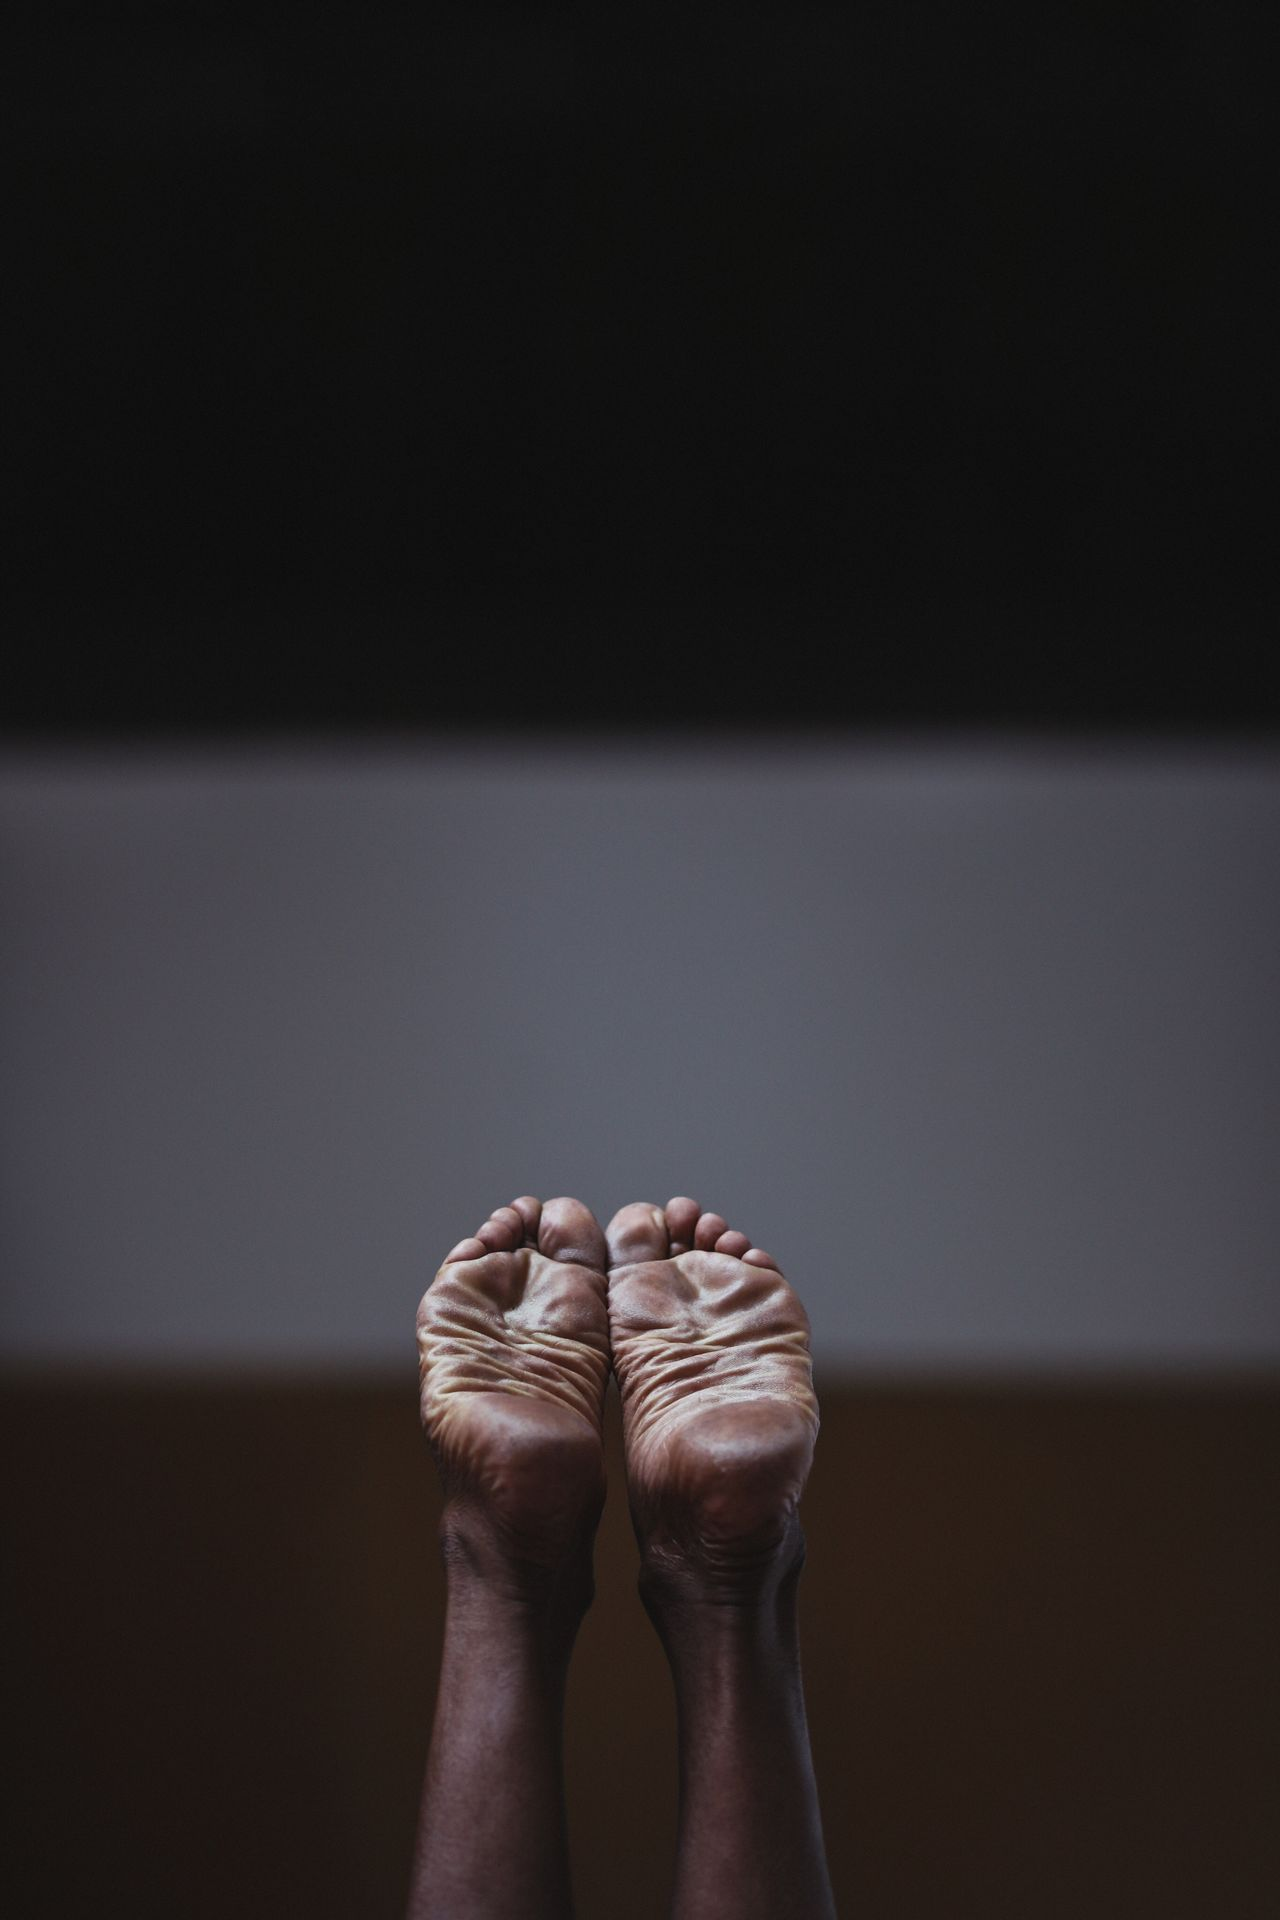 Barefoot,  Close-Up,  Day,  Feet Up,  Flexibility